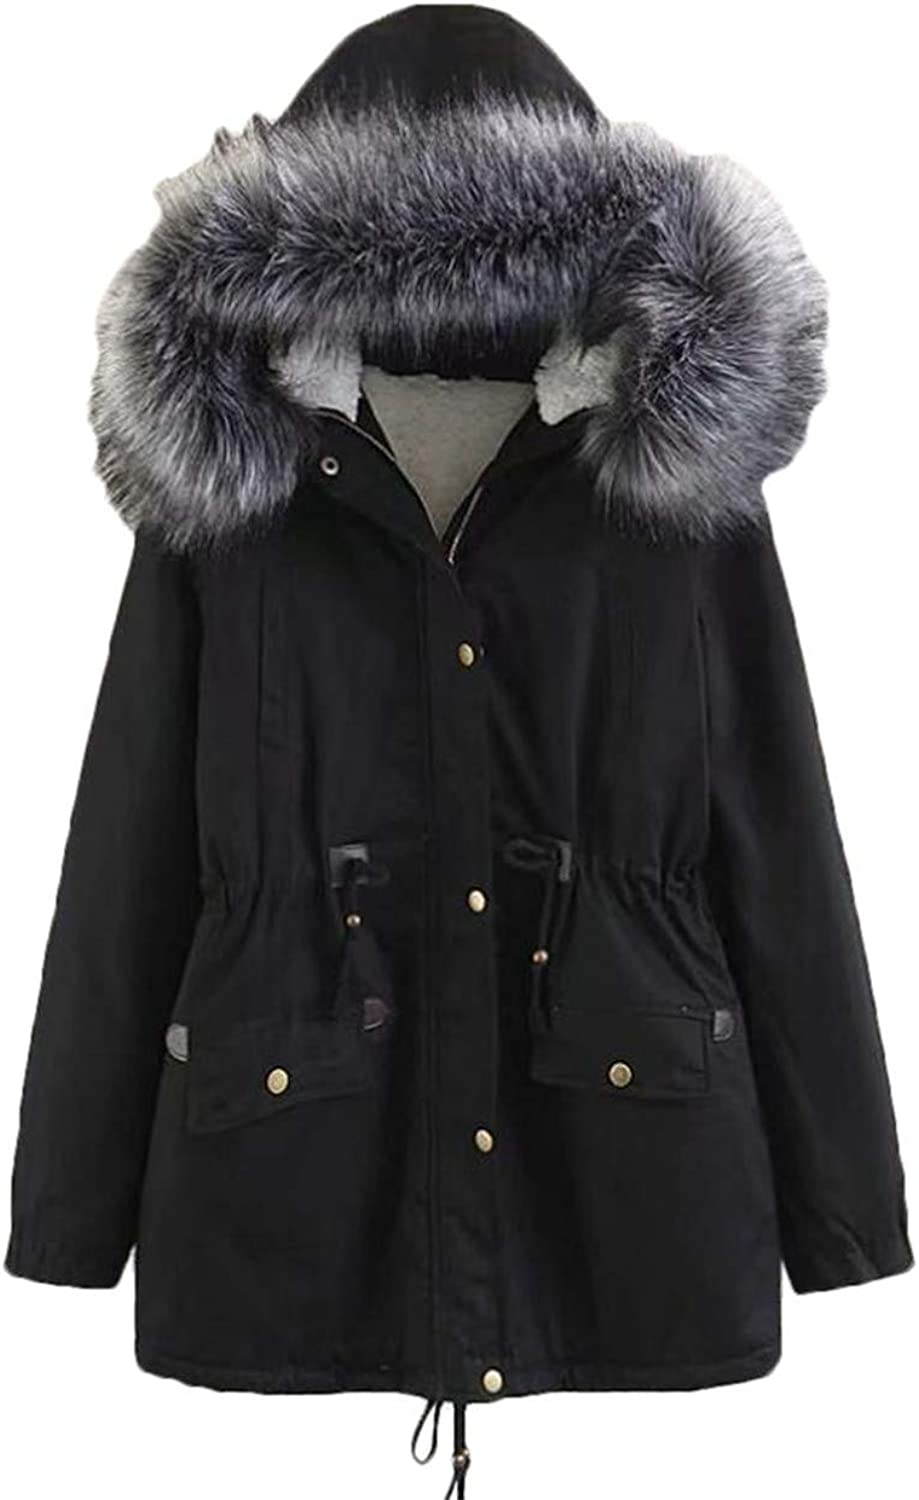 BLTR Women Winter Thicken Warm Coats Parkas Faux Fur Hooded